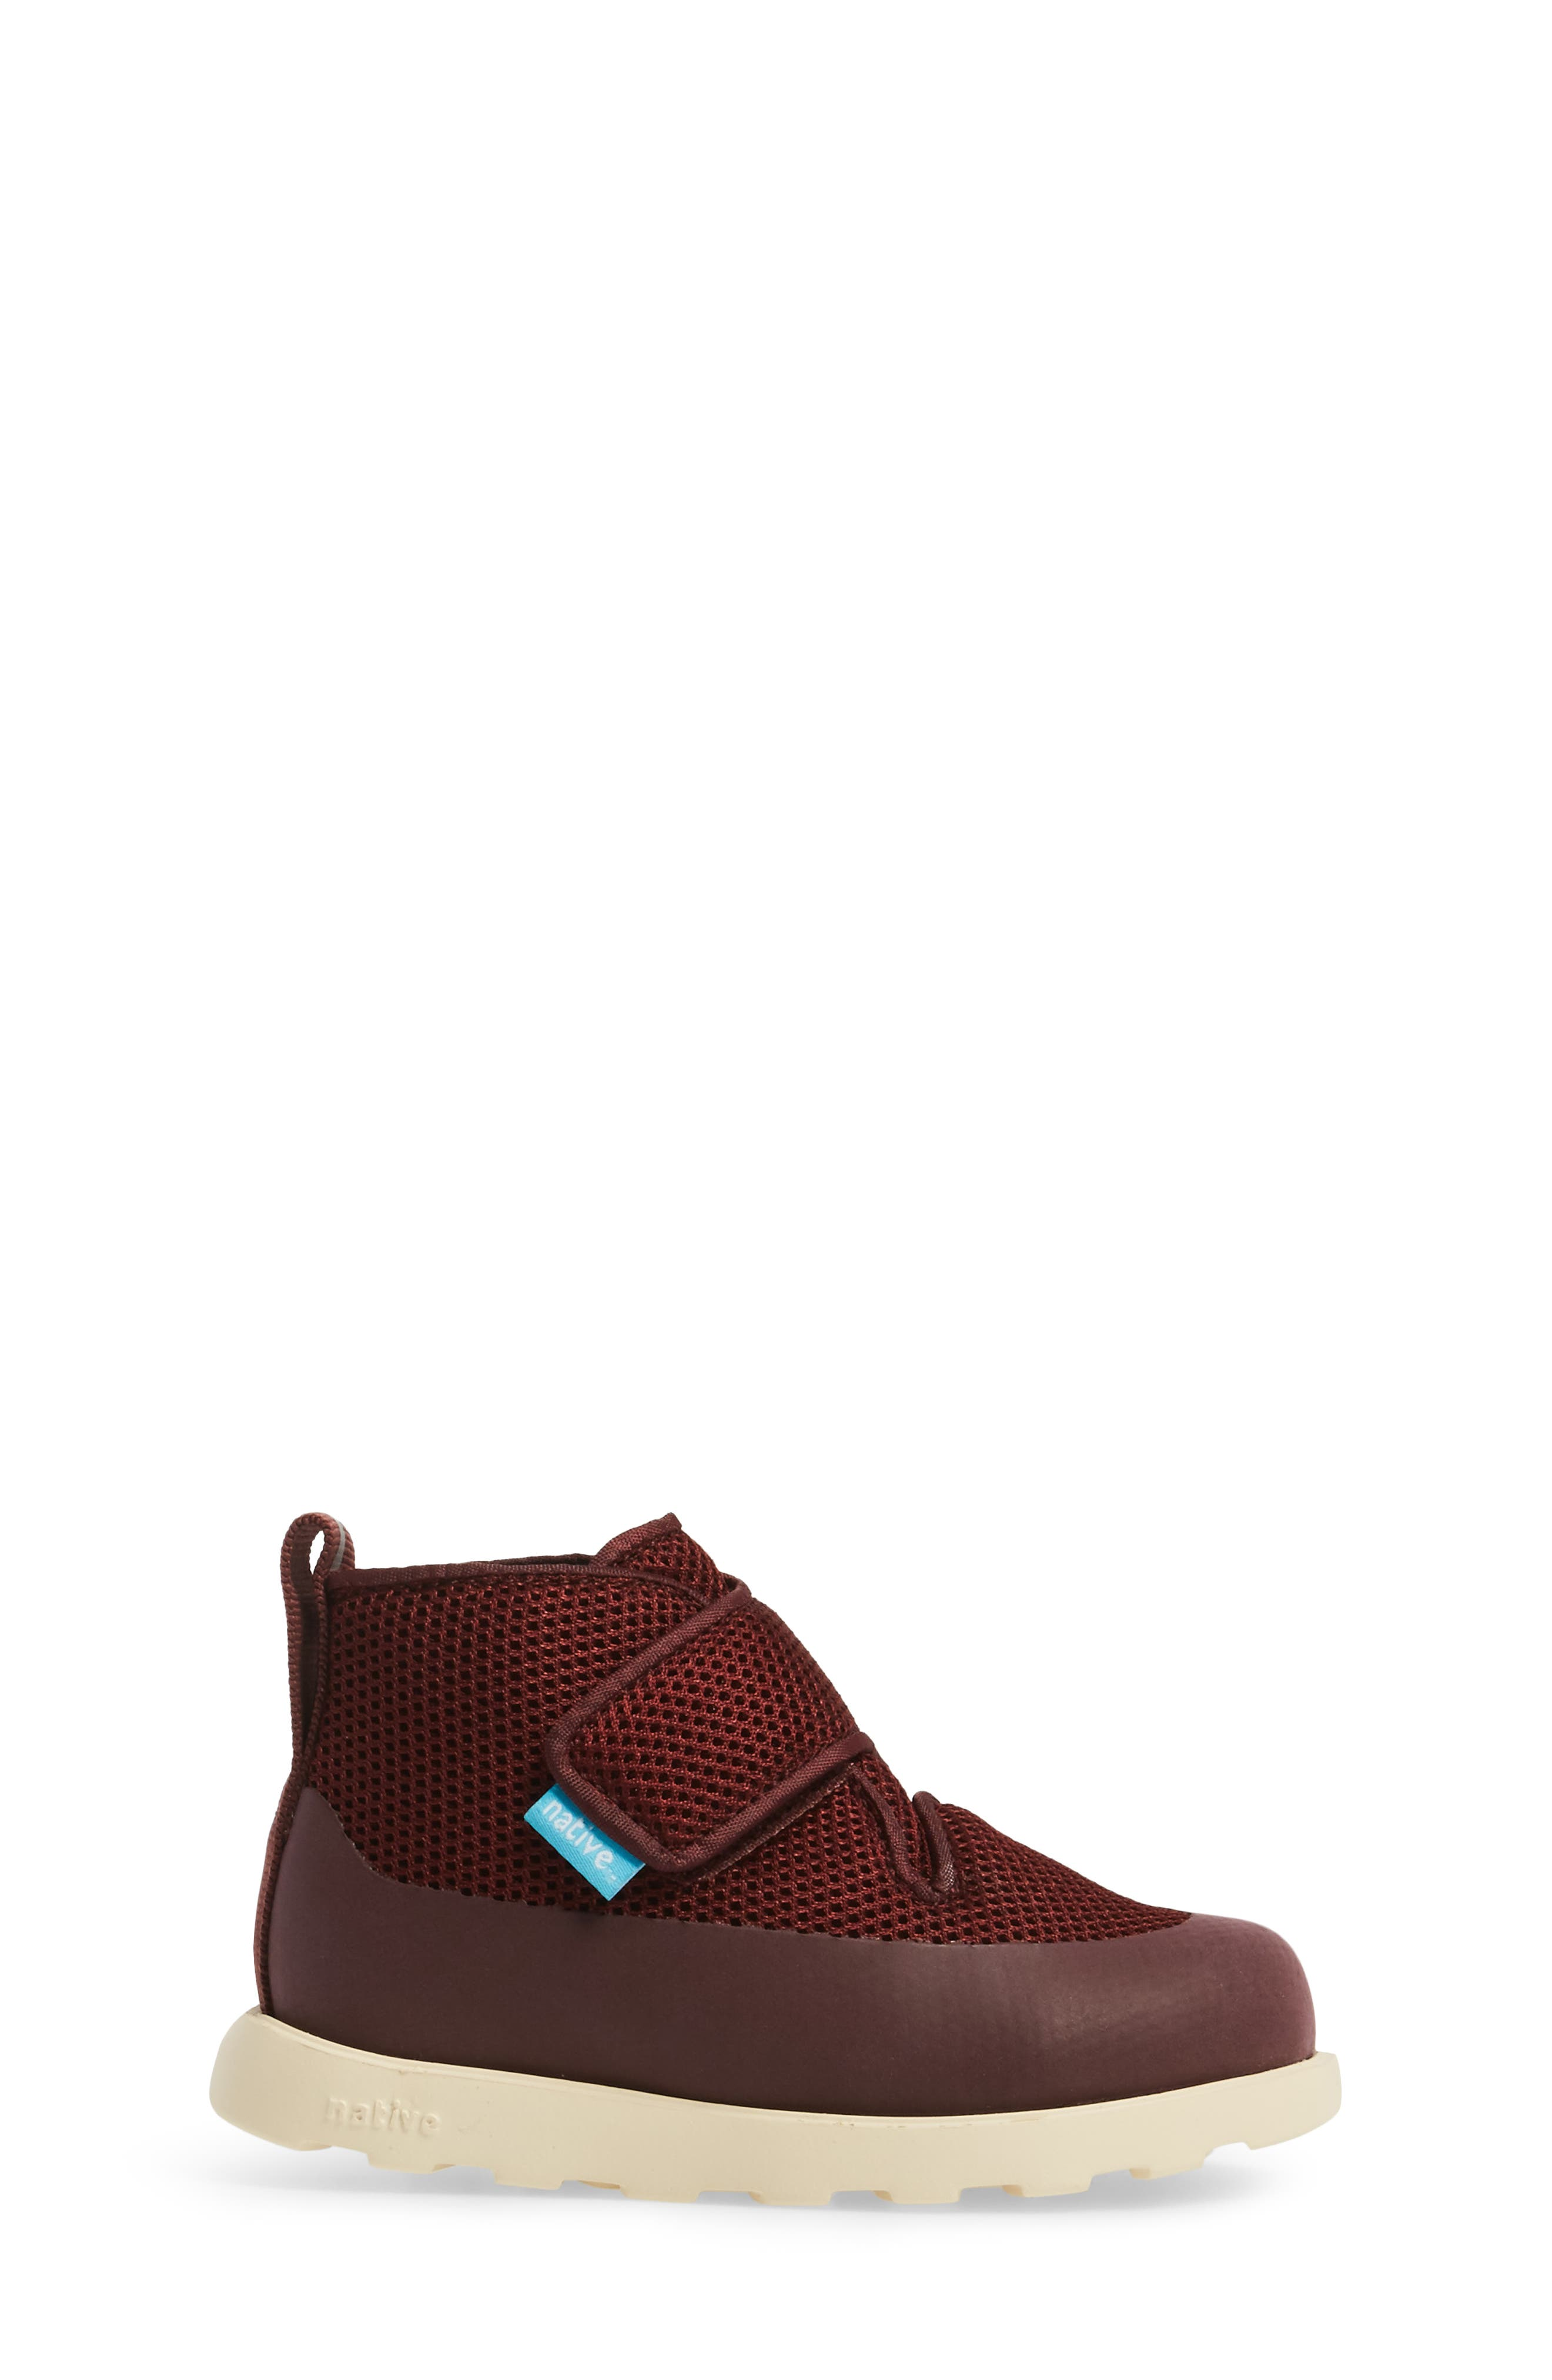 Alternate Image 3  - Native Shoes 'Fitzroy Fast' Water Resistant Boot (Walker & Toddler)